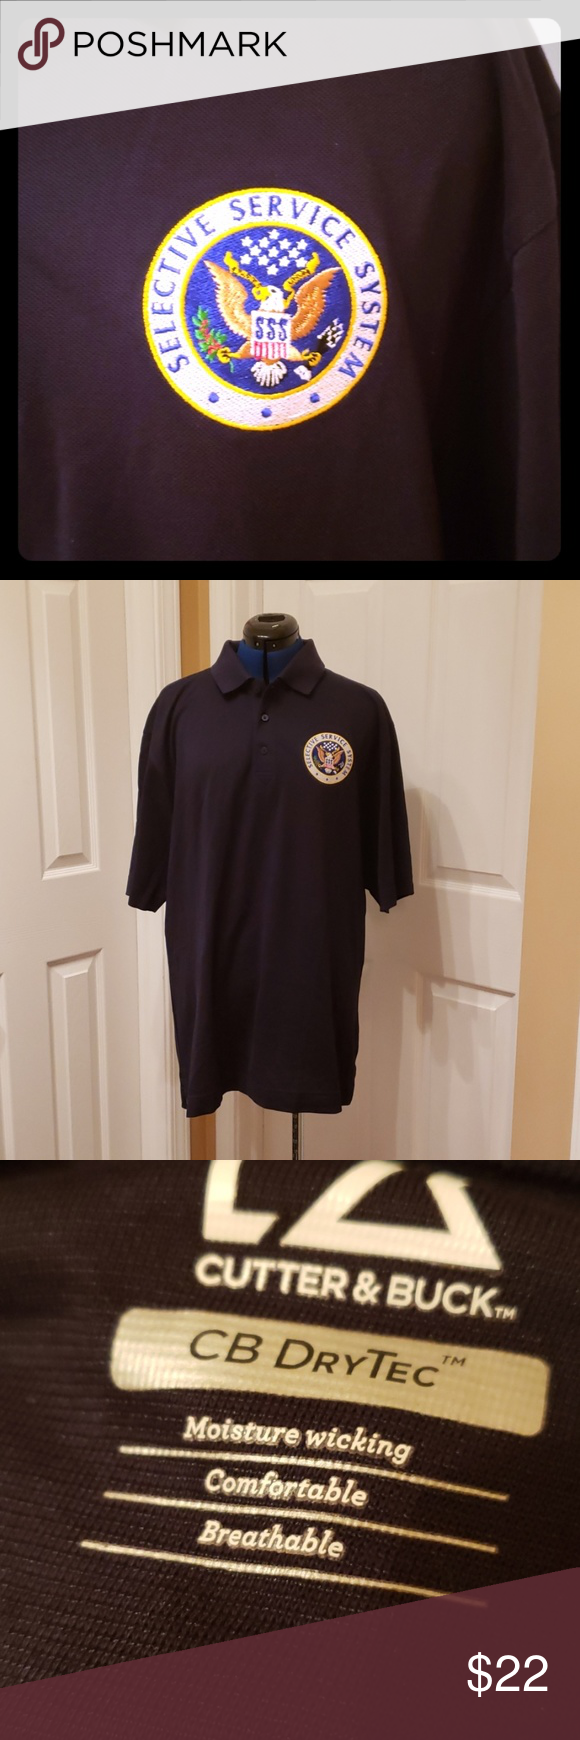 Men's XL Selective Service Logo Polo Shirt Nice black